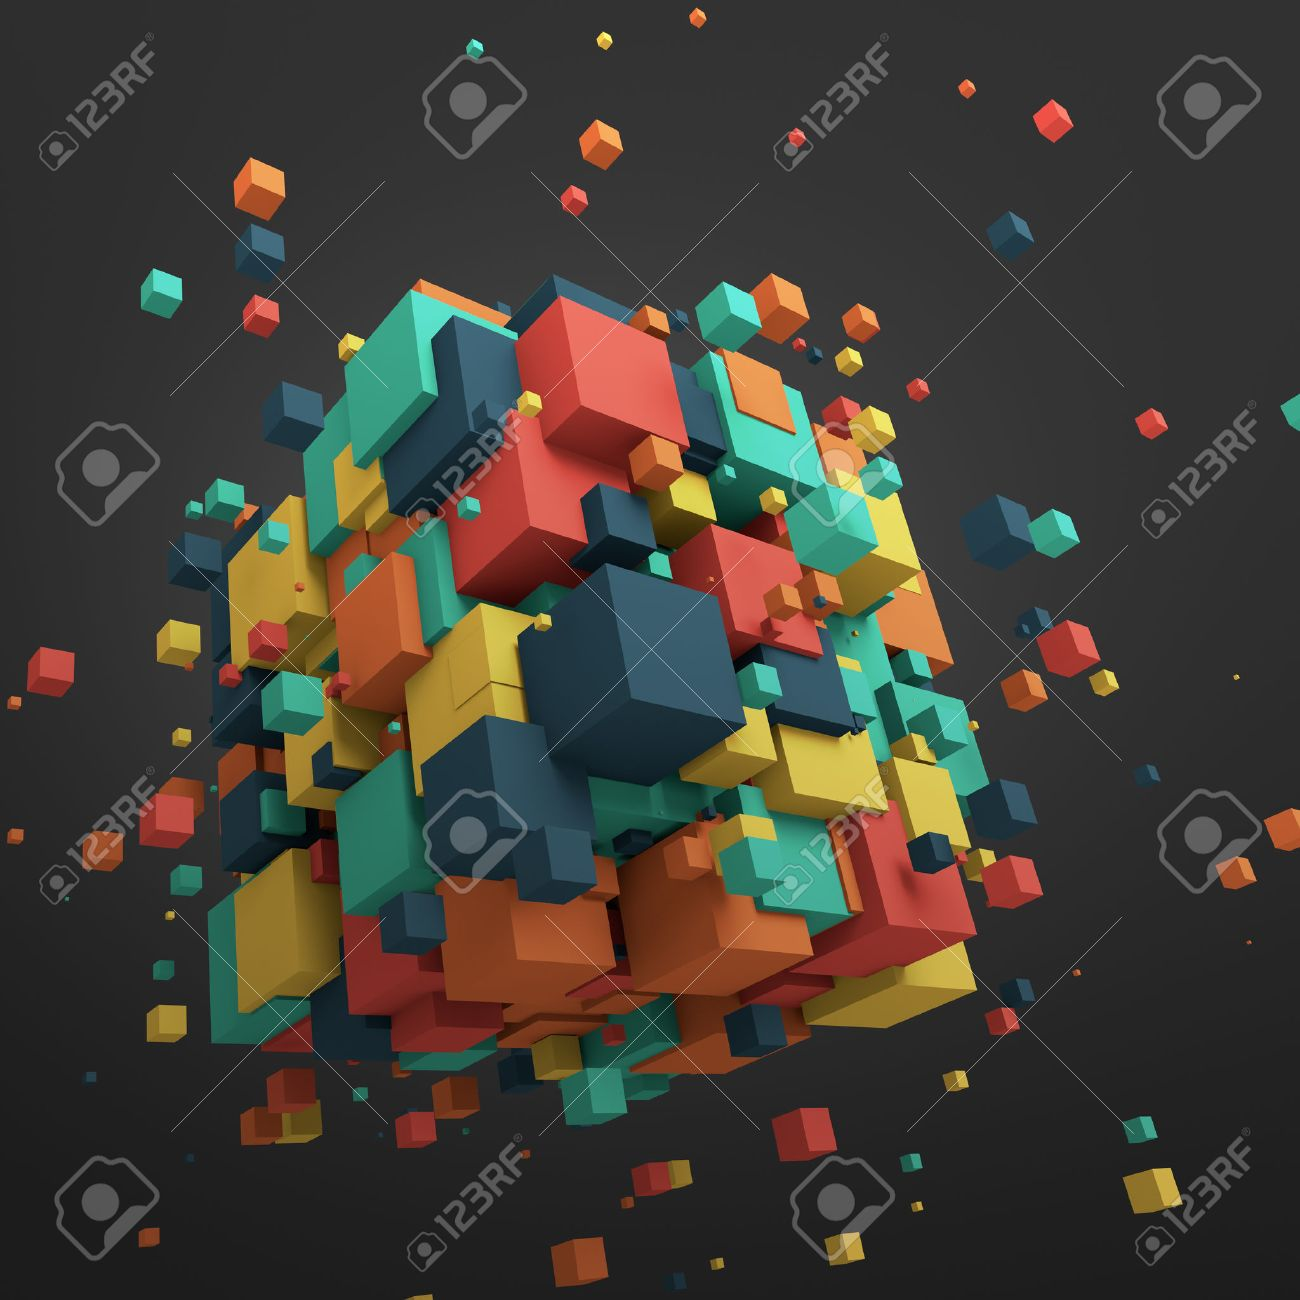 Abstract 3d rendering of chaotic particles. Colored cubes in empty space. Colorful background. Stock Photo - 44121560